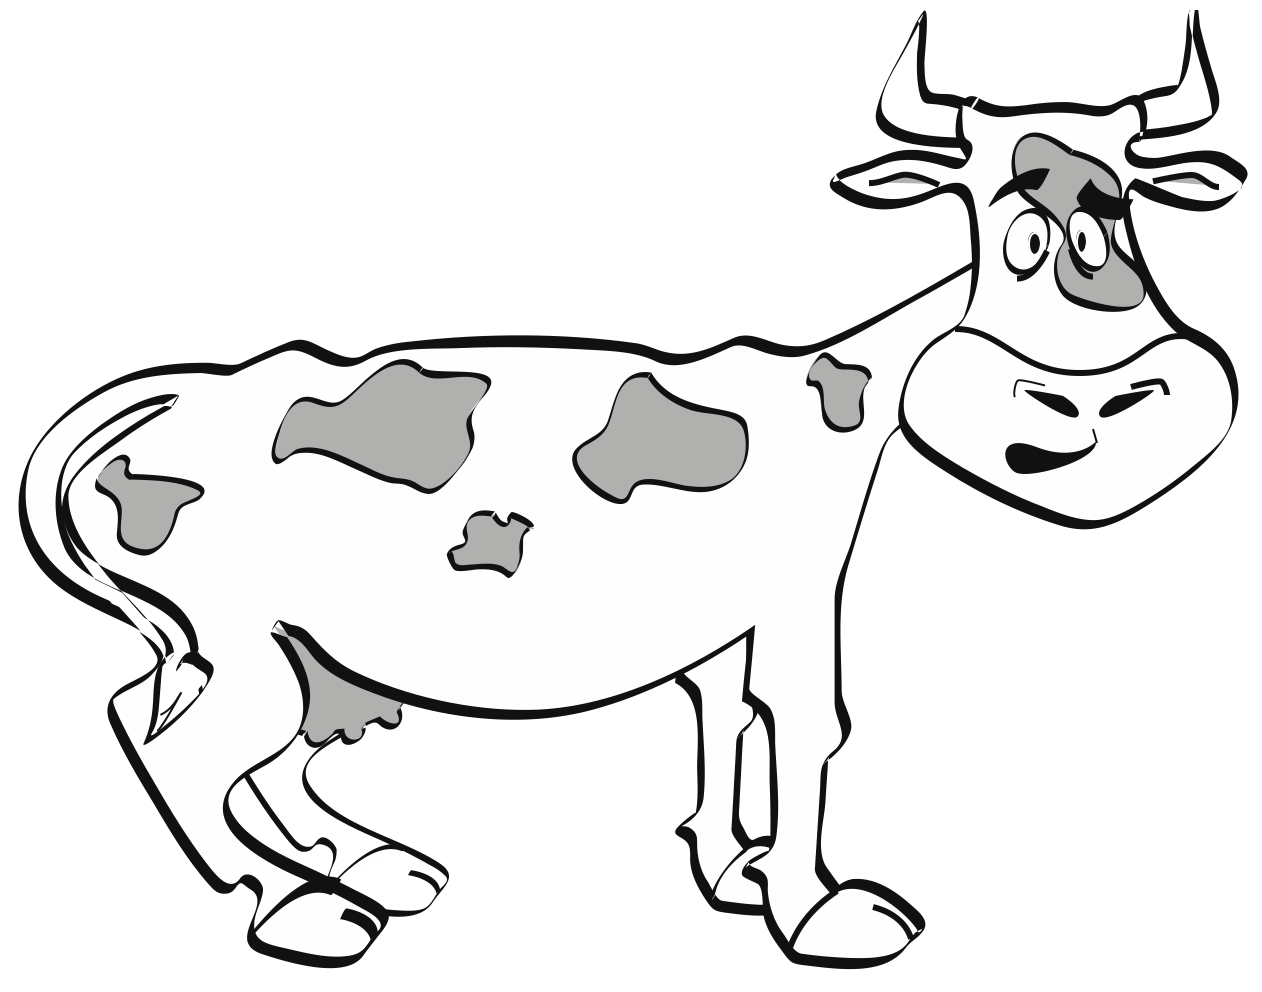 Cow-Graphic